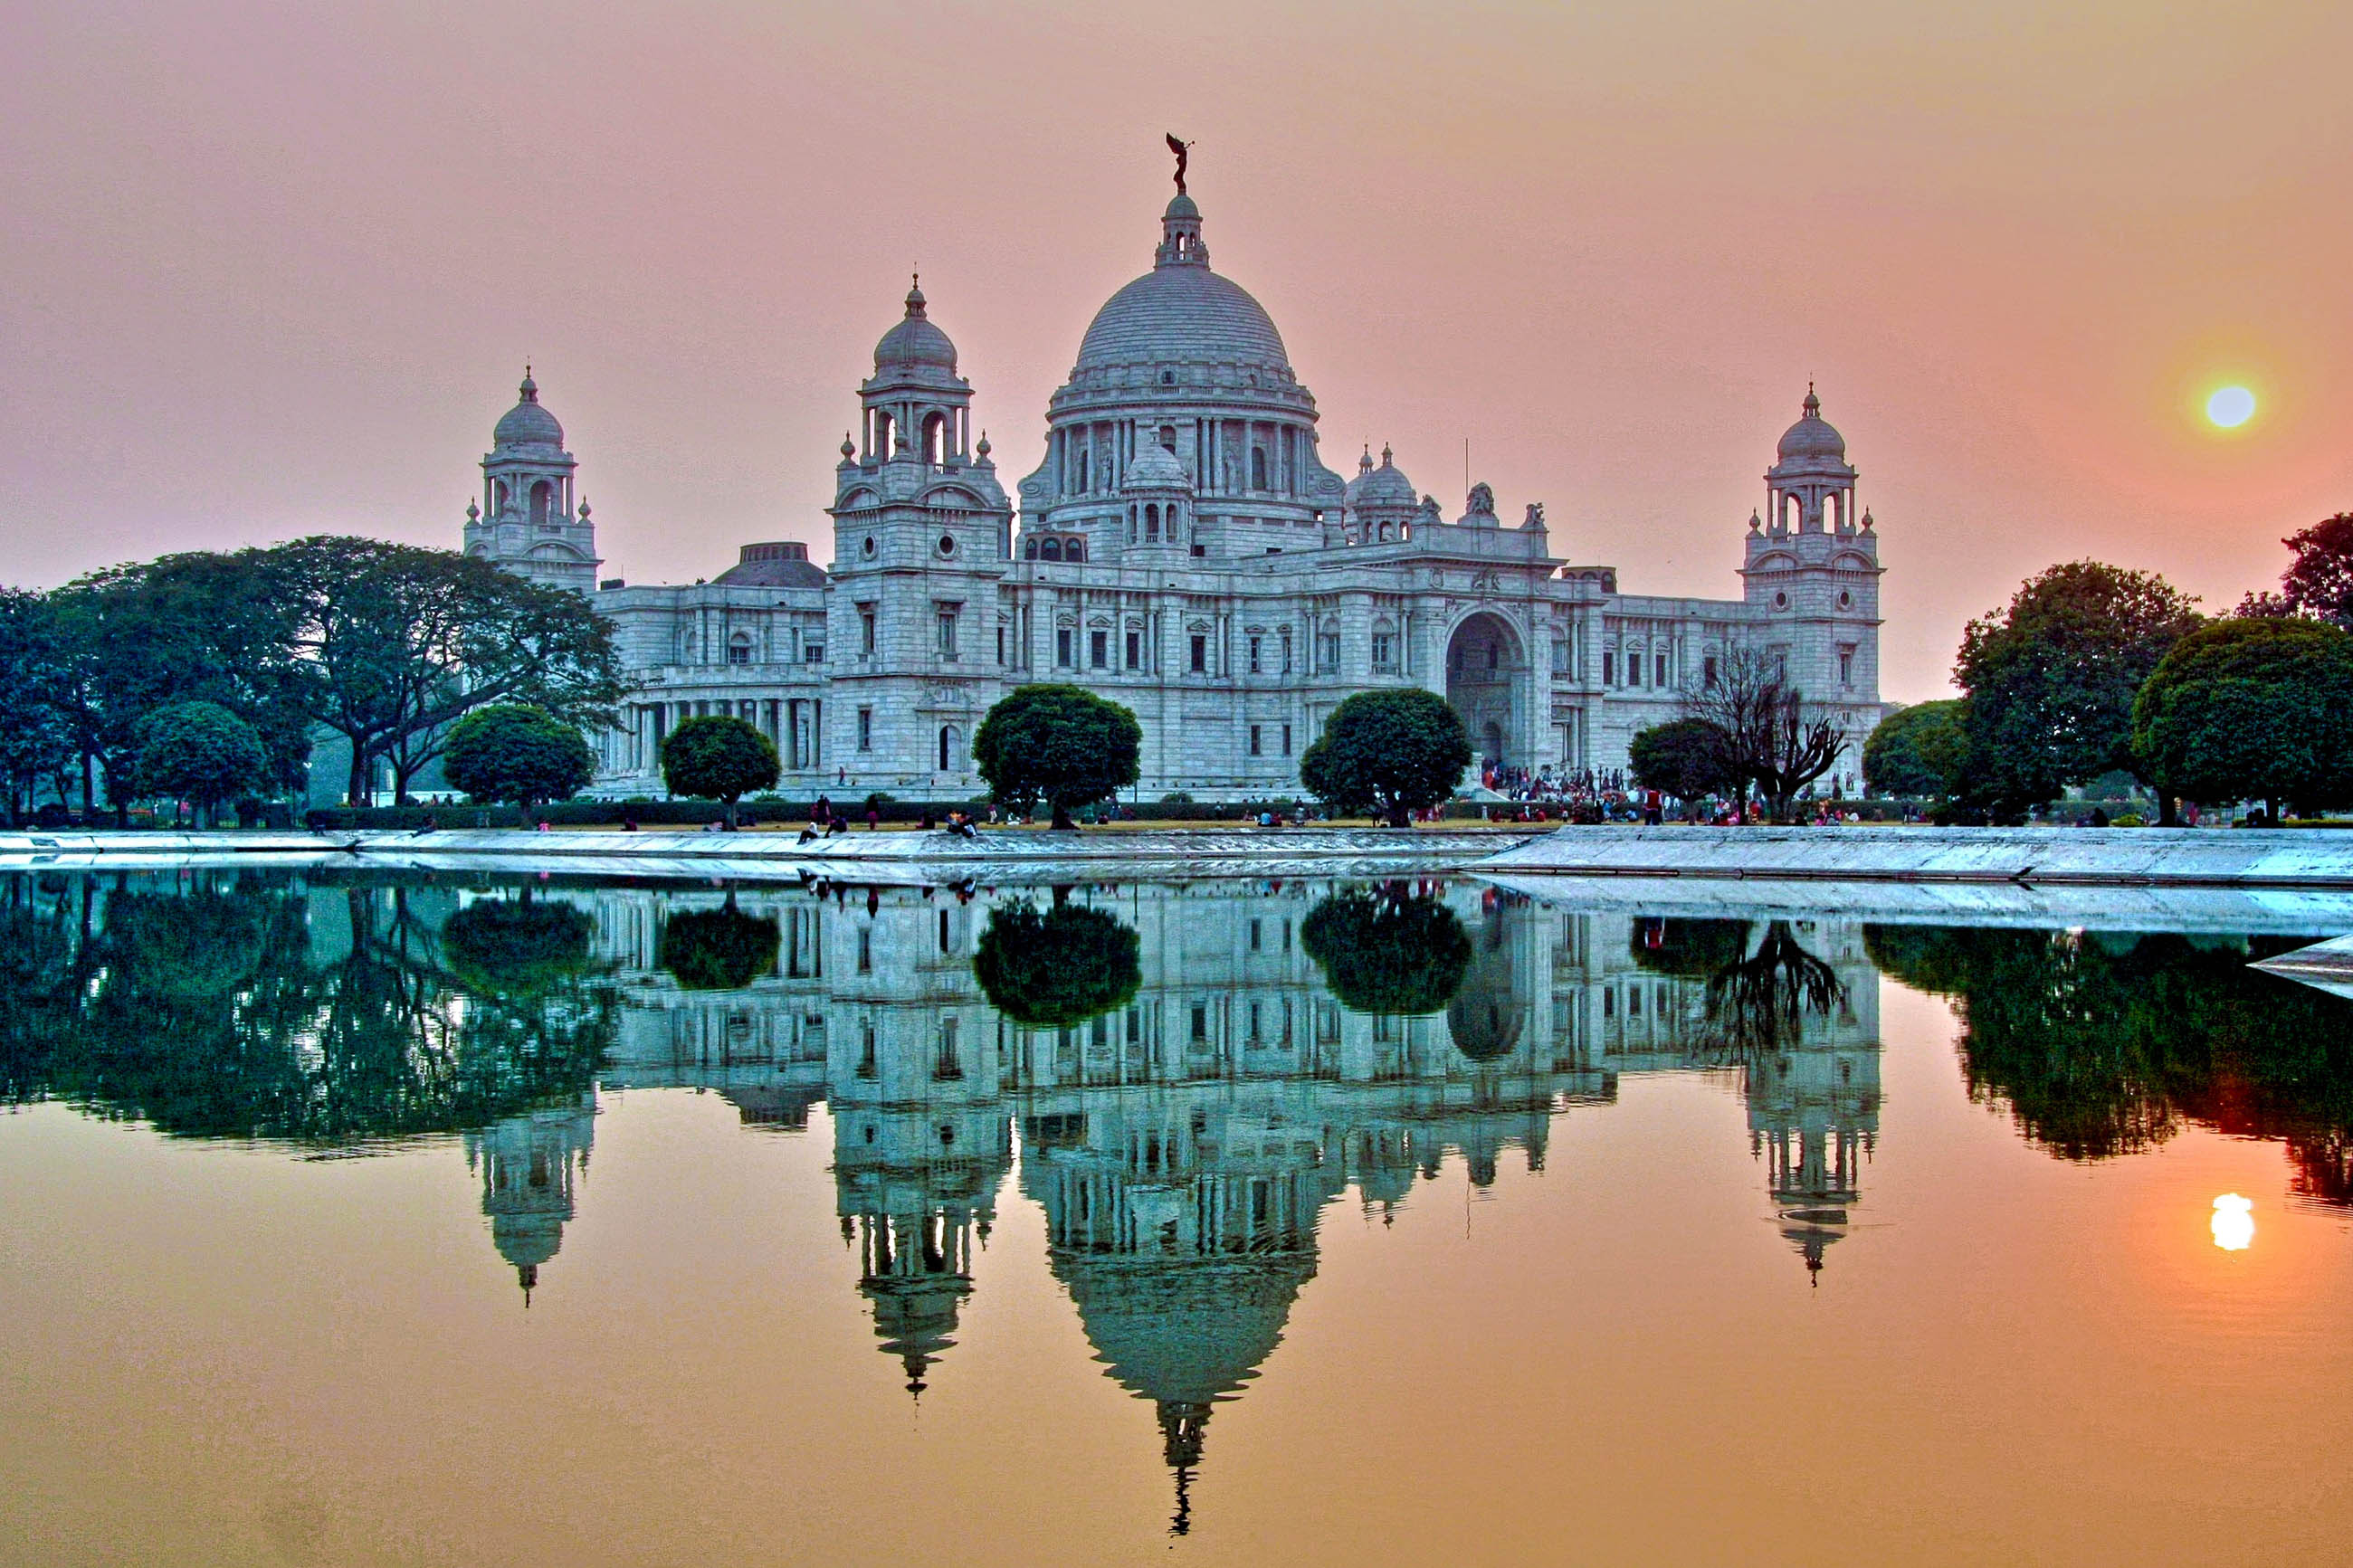 Victoria memorial in kalkutta indien franks travelbox for Das design des esszimmers